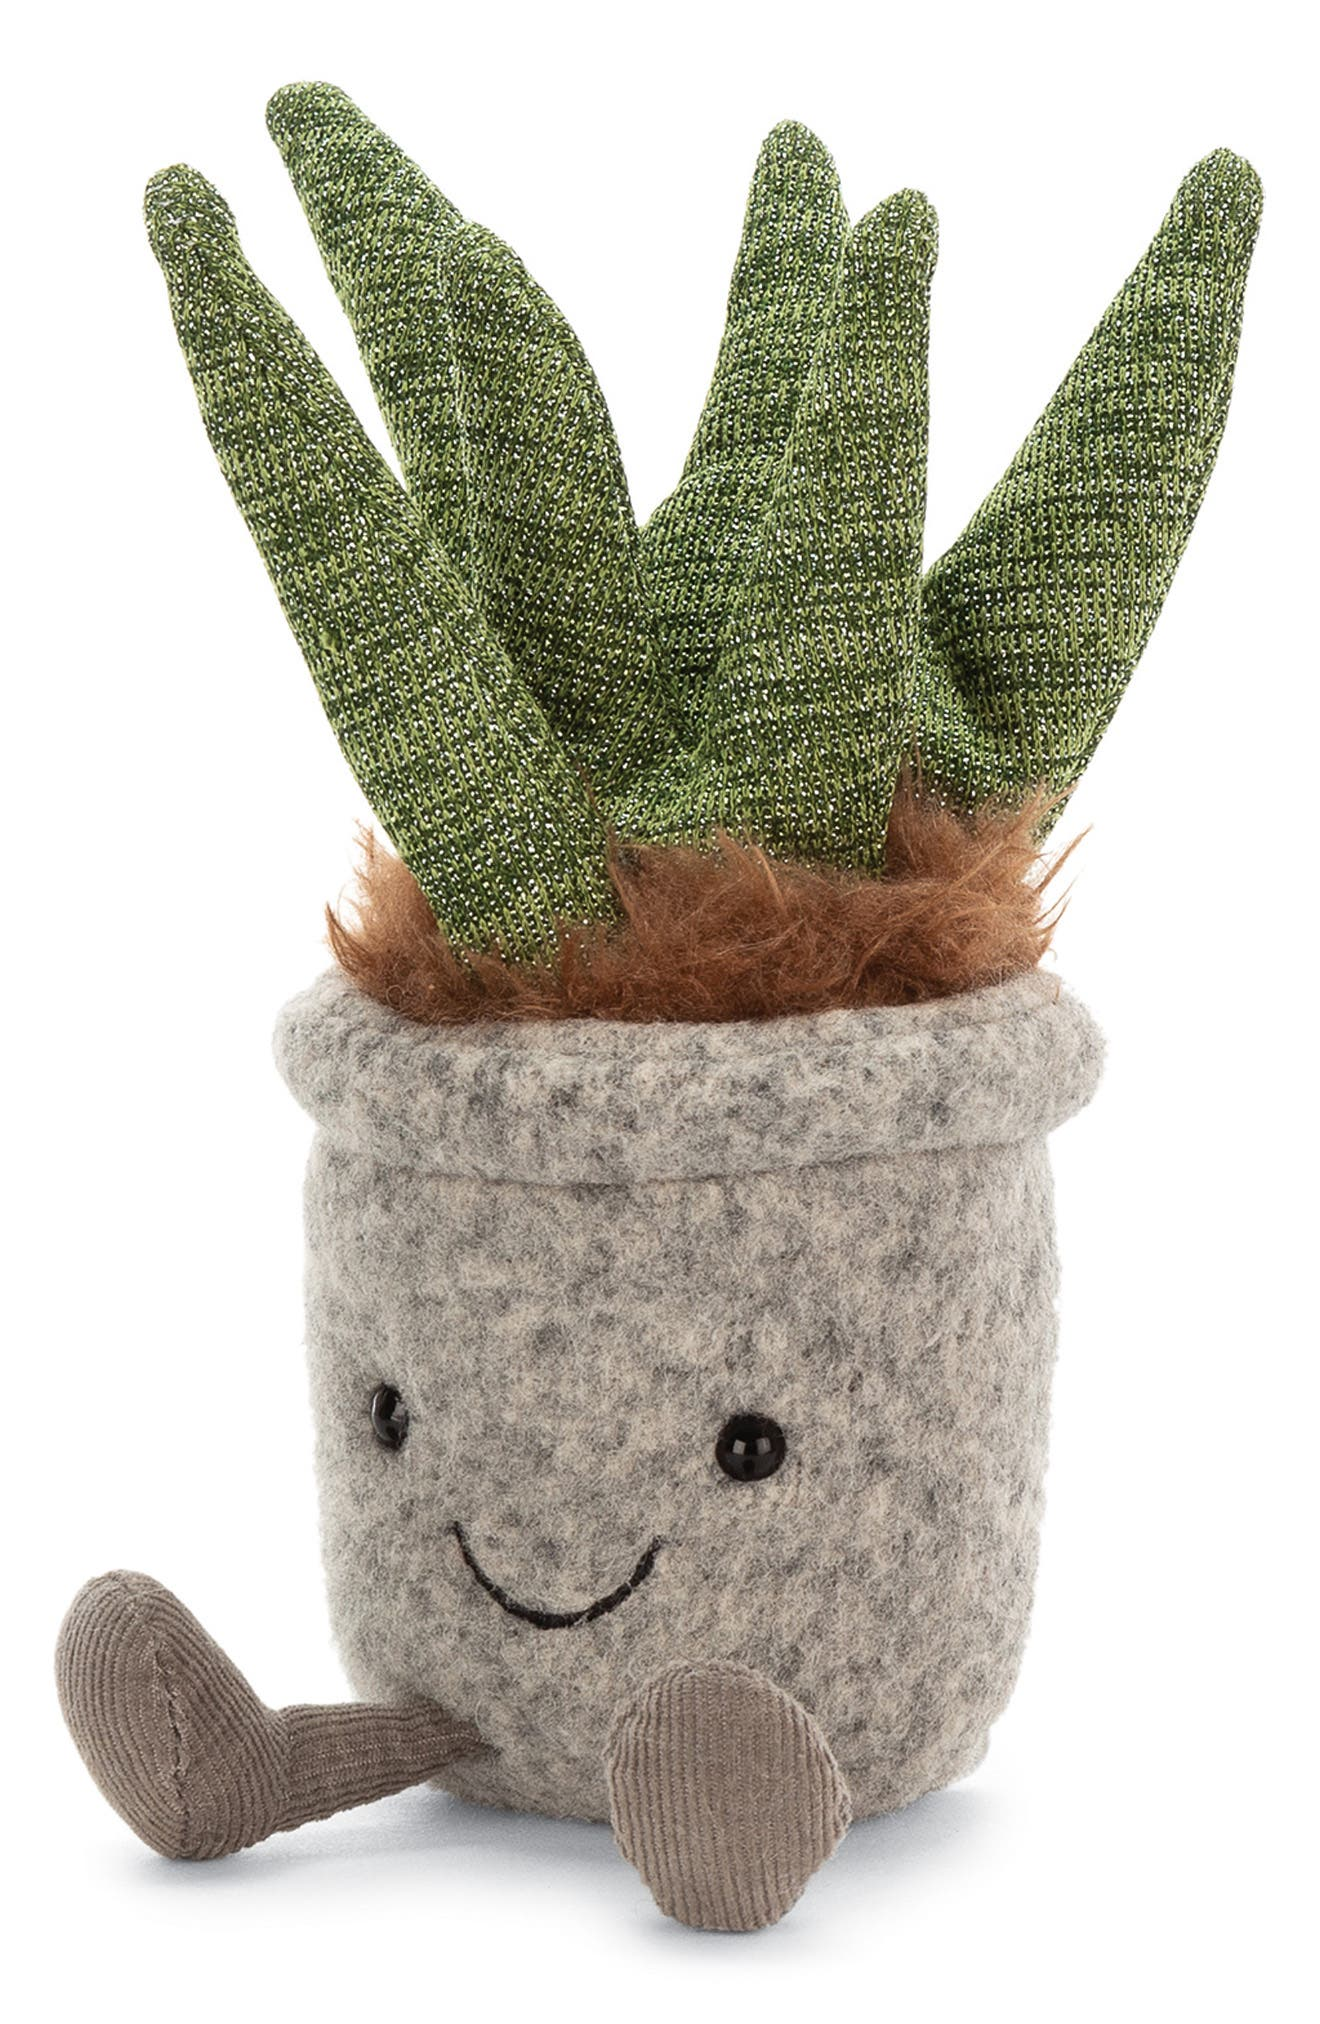 Toddler Jellycat Silly Succulent Aloe Plush Toy